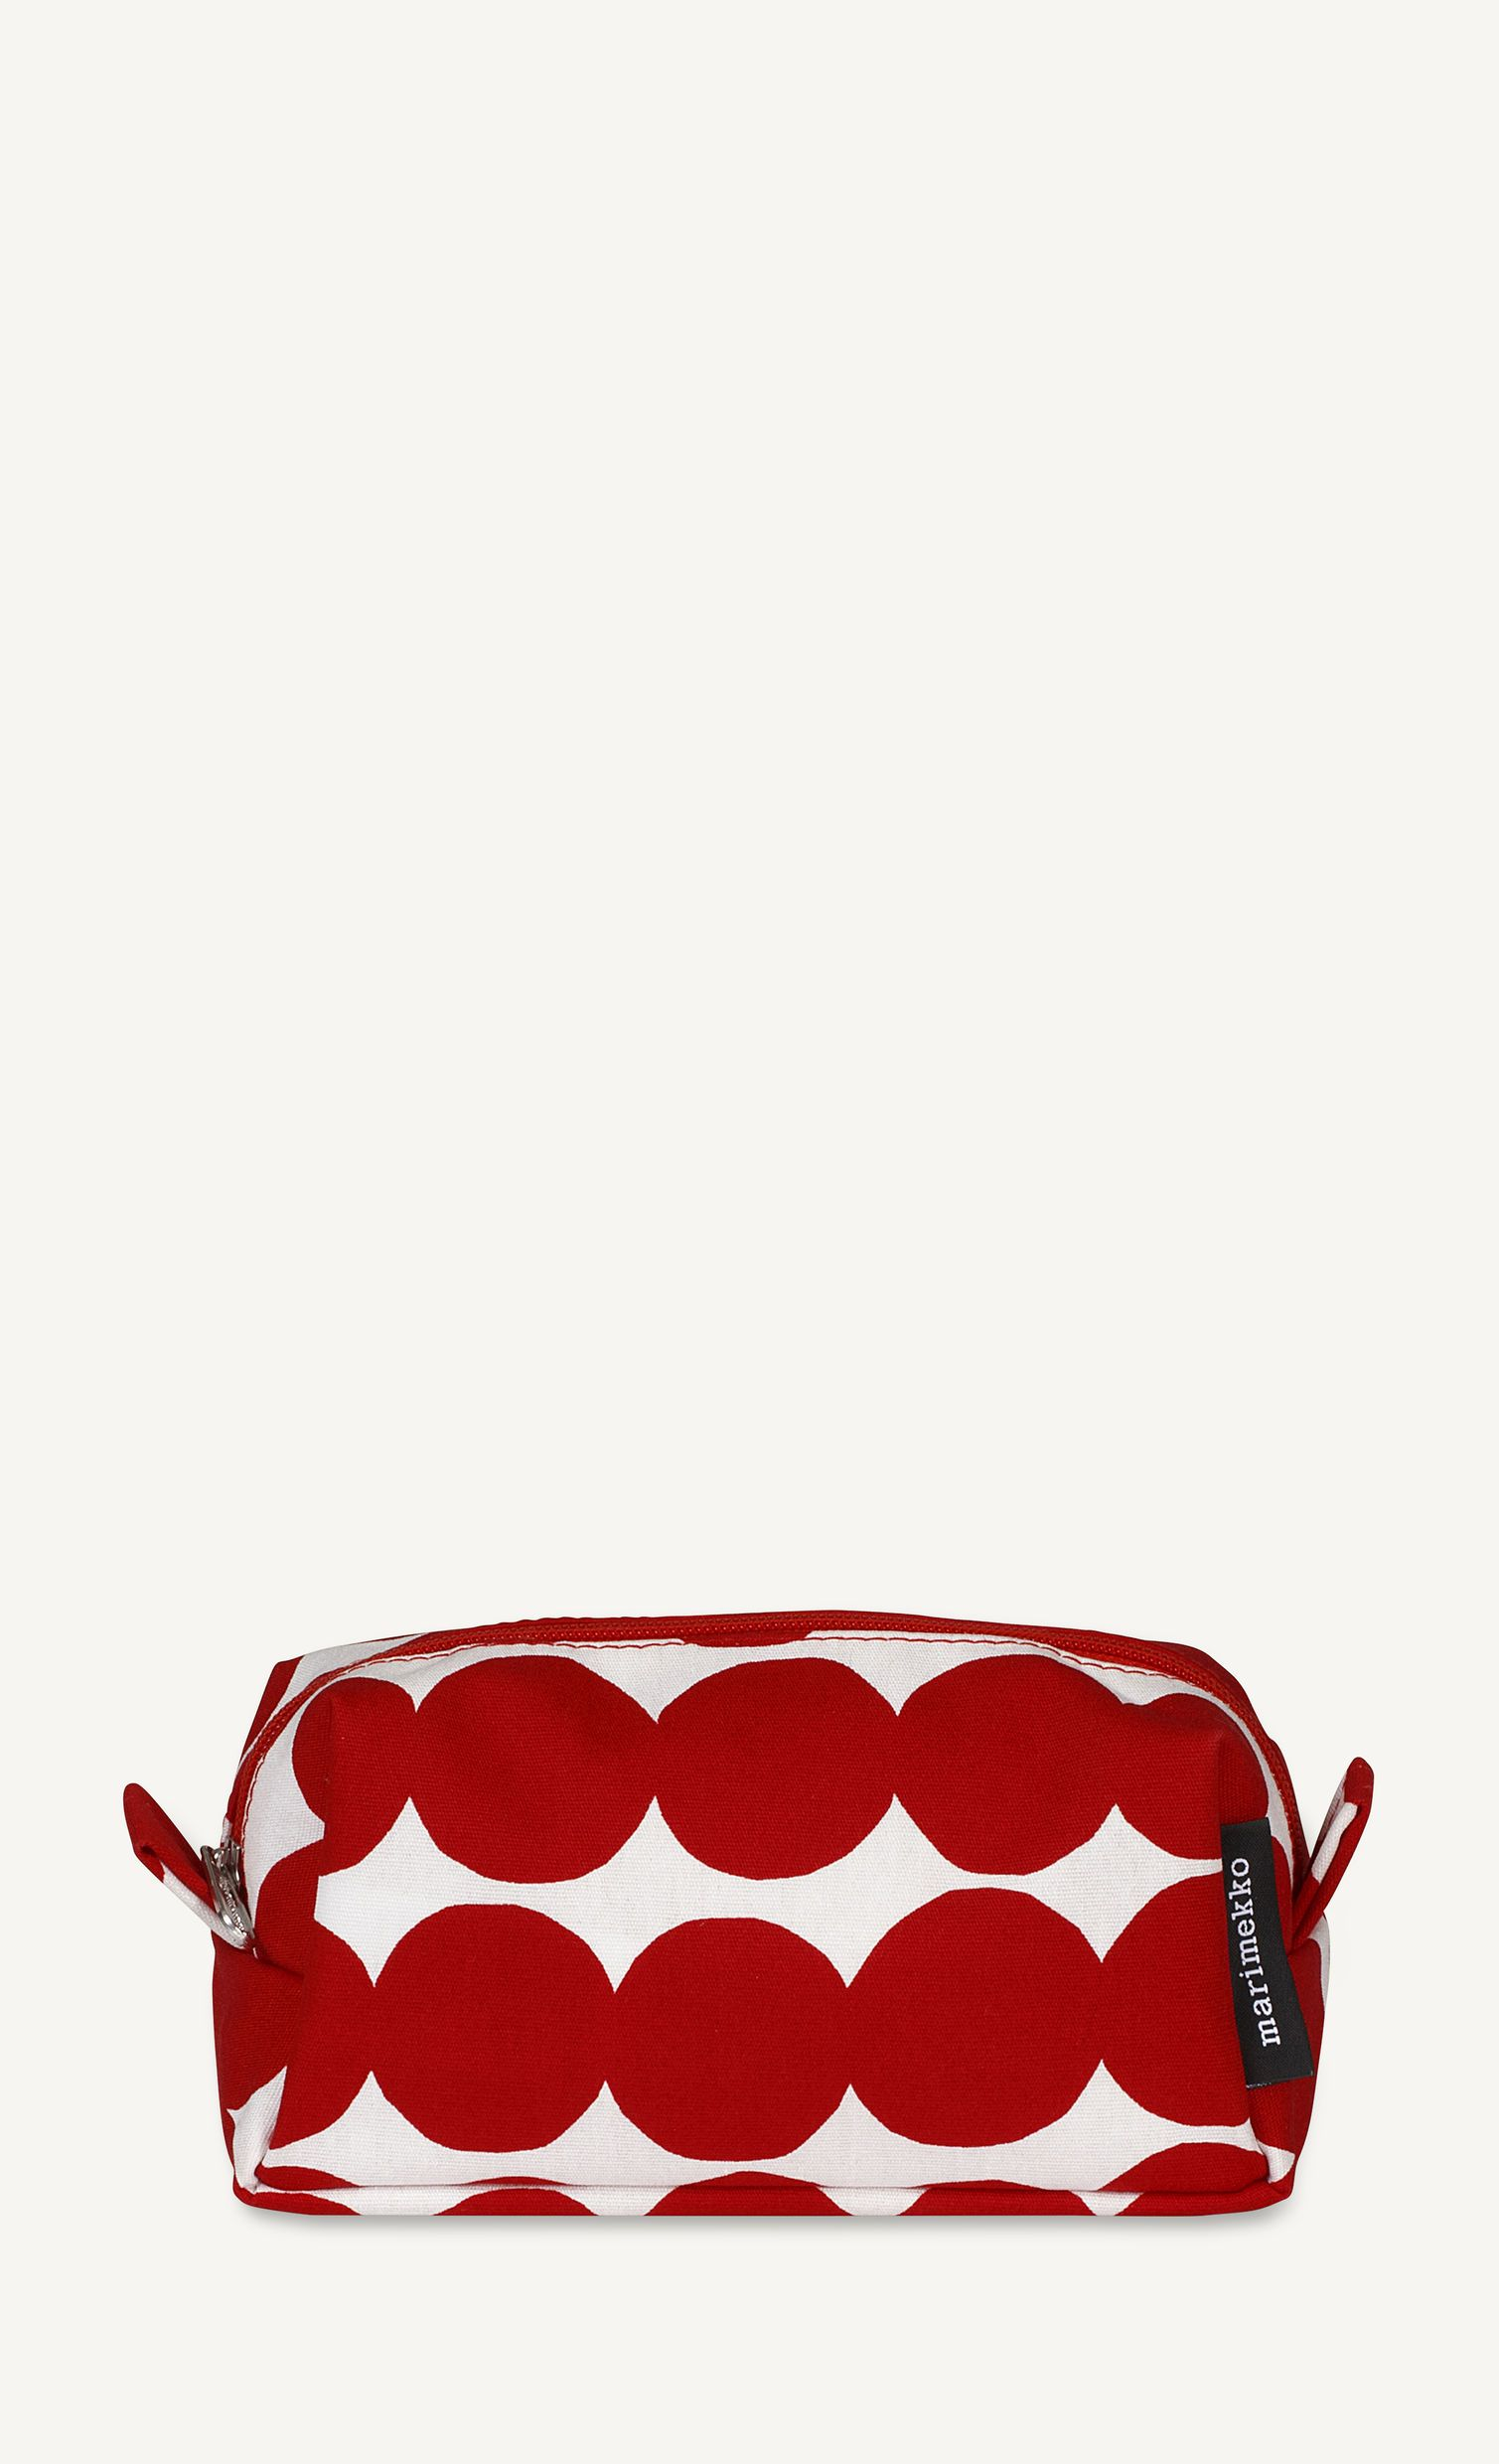 Marimekko, Taimi Räsymatto Toiletry Bag, White/Red- Placewares